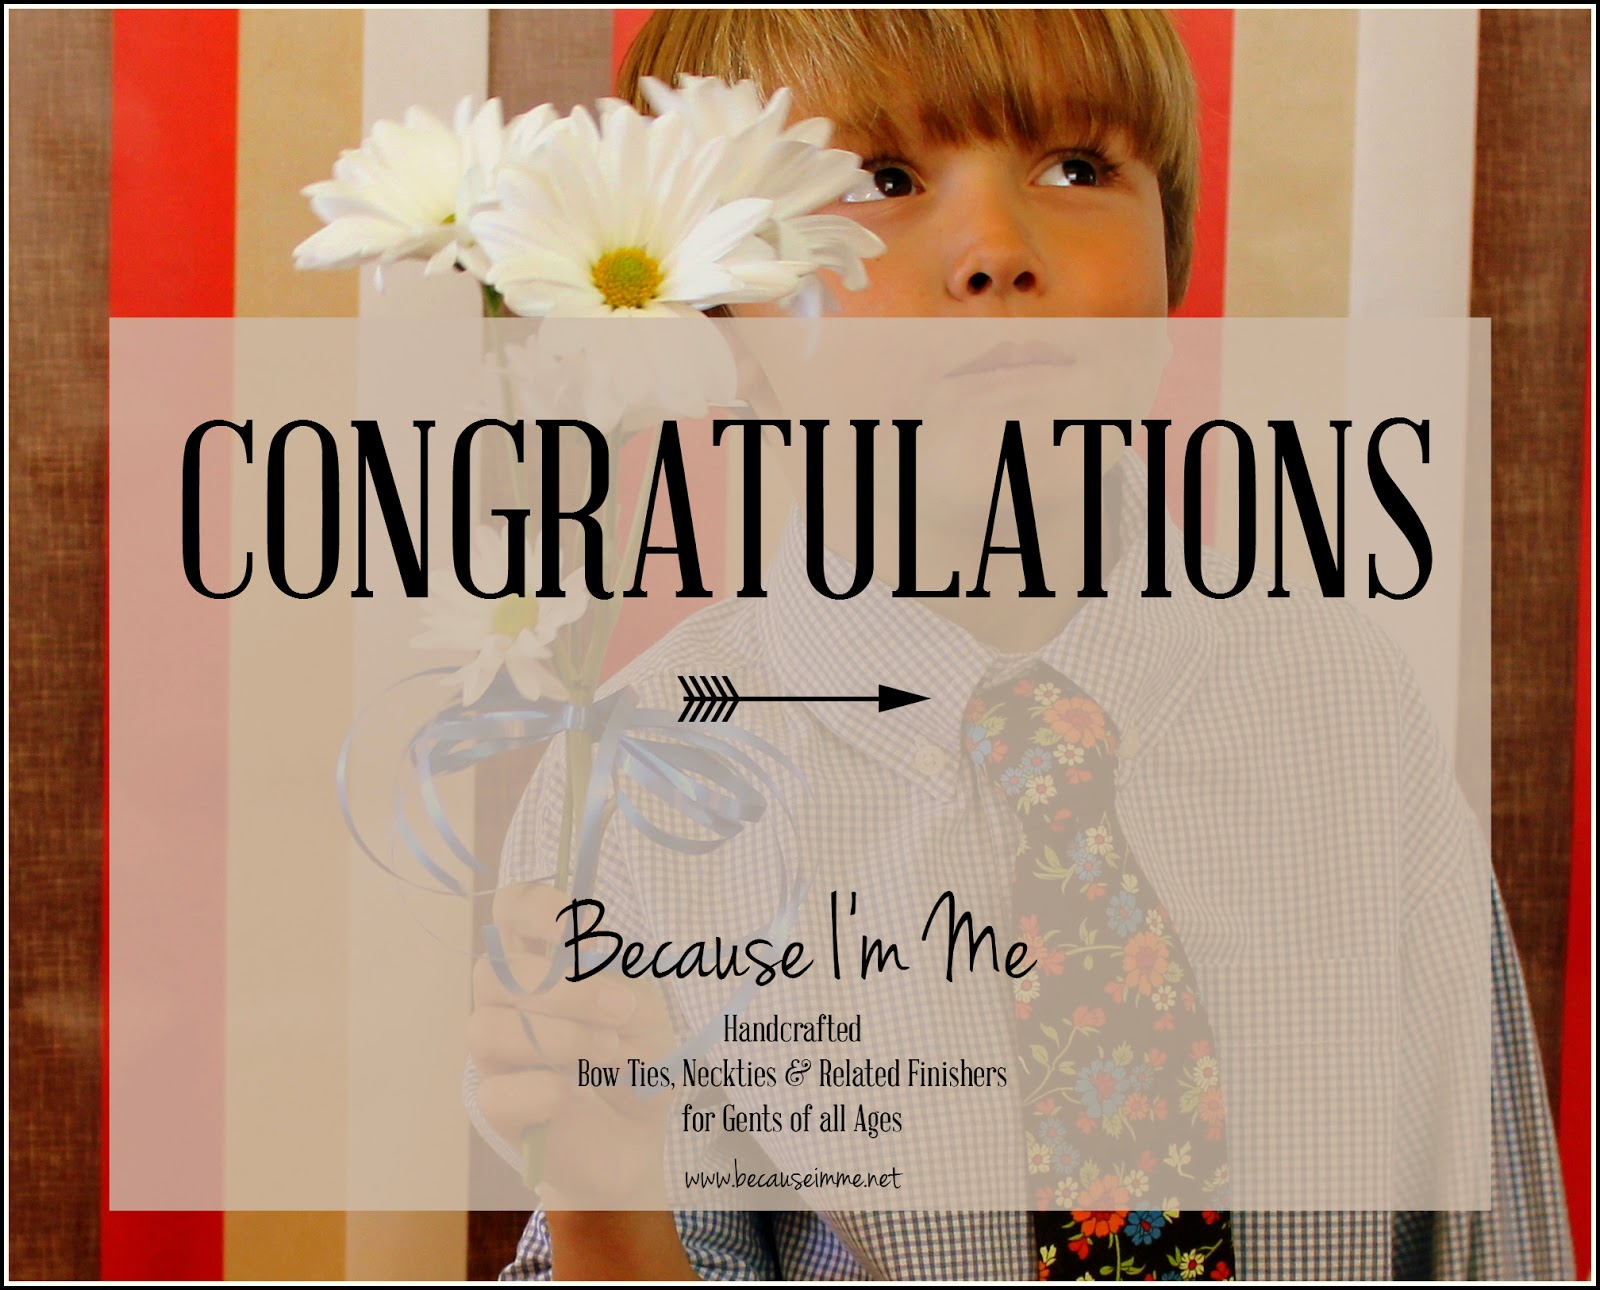 Because I'm Me Giveaway winner 23 Blast DVD